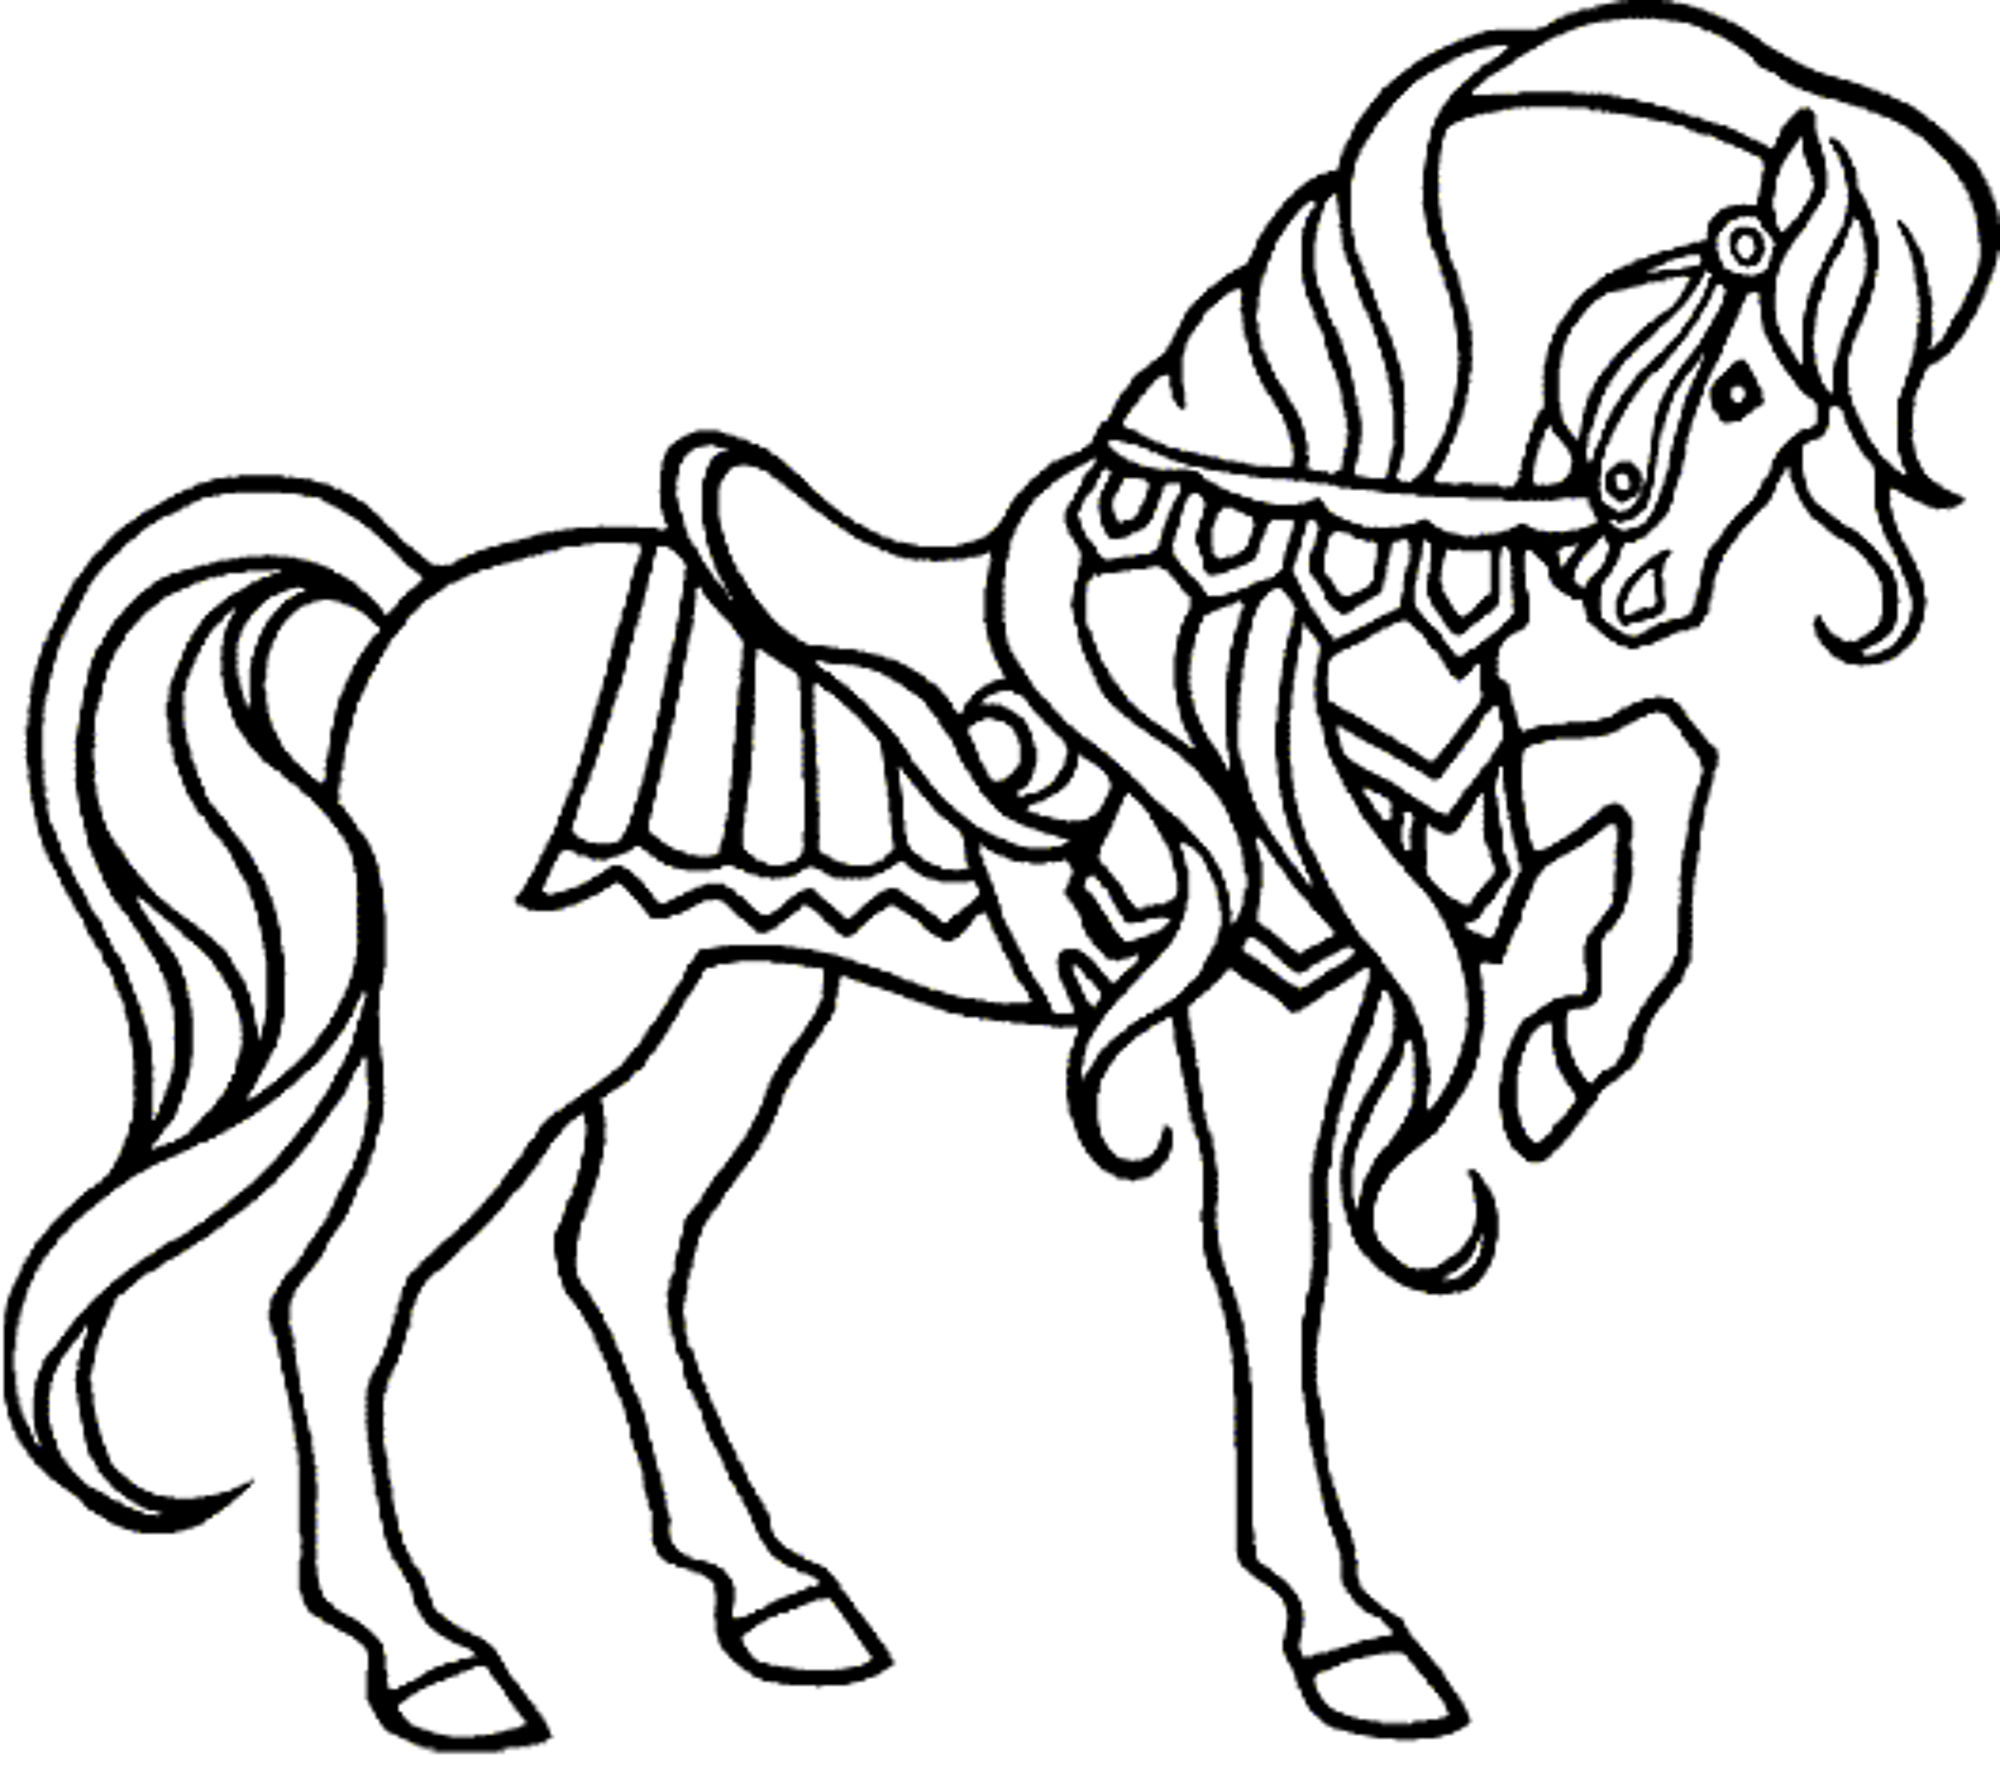 horse coloring pages for girls princess horse coloring pages for girls topcoloringpagesnet coloring horse for pages girls